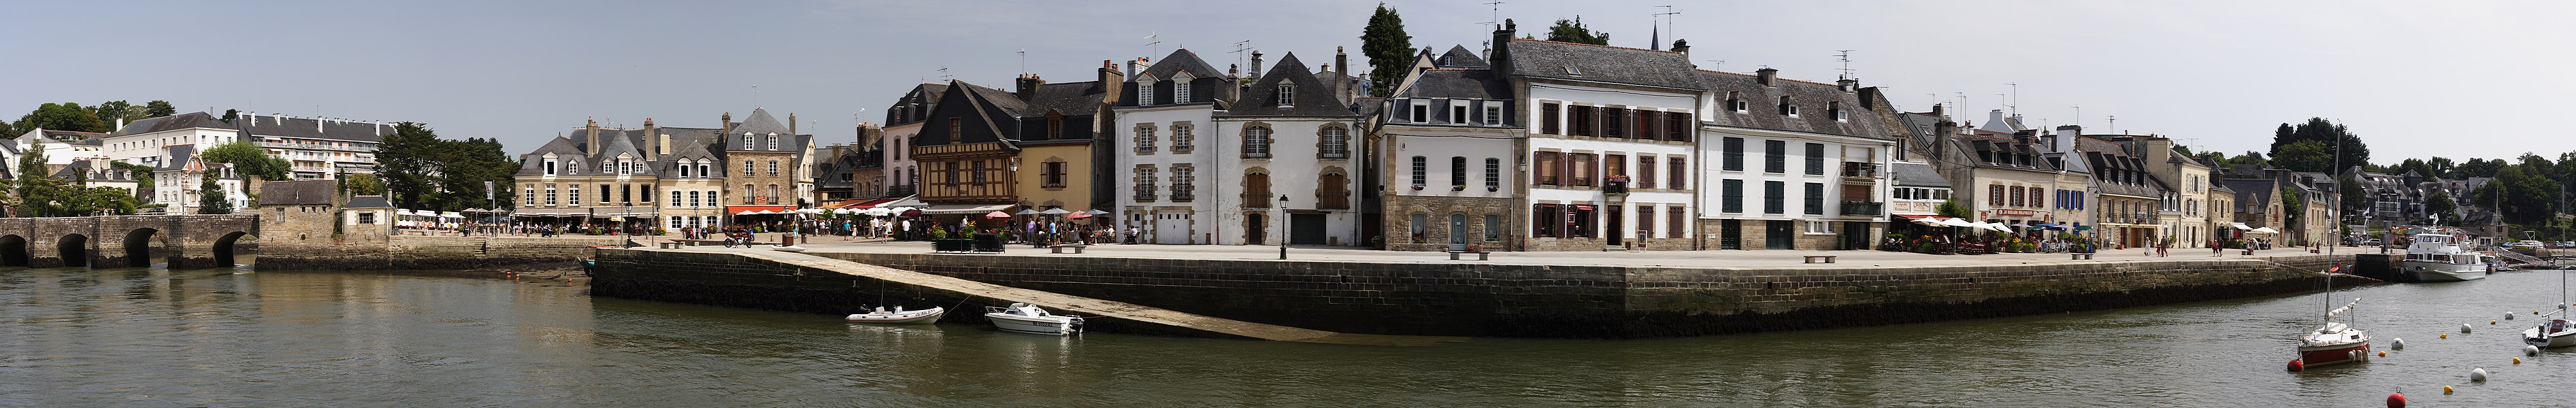 Quai Franklin in Auray, France. Panorama created with Hugin from 16 images taken with a Canon EOS 350D and a Canon 50mm f/1.4 @ f/8.